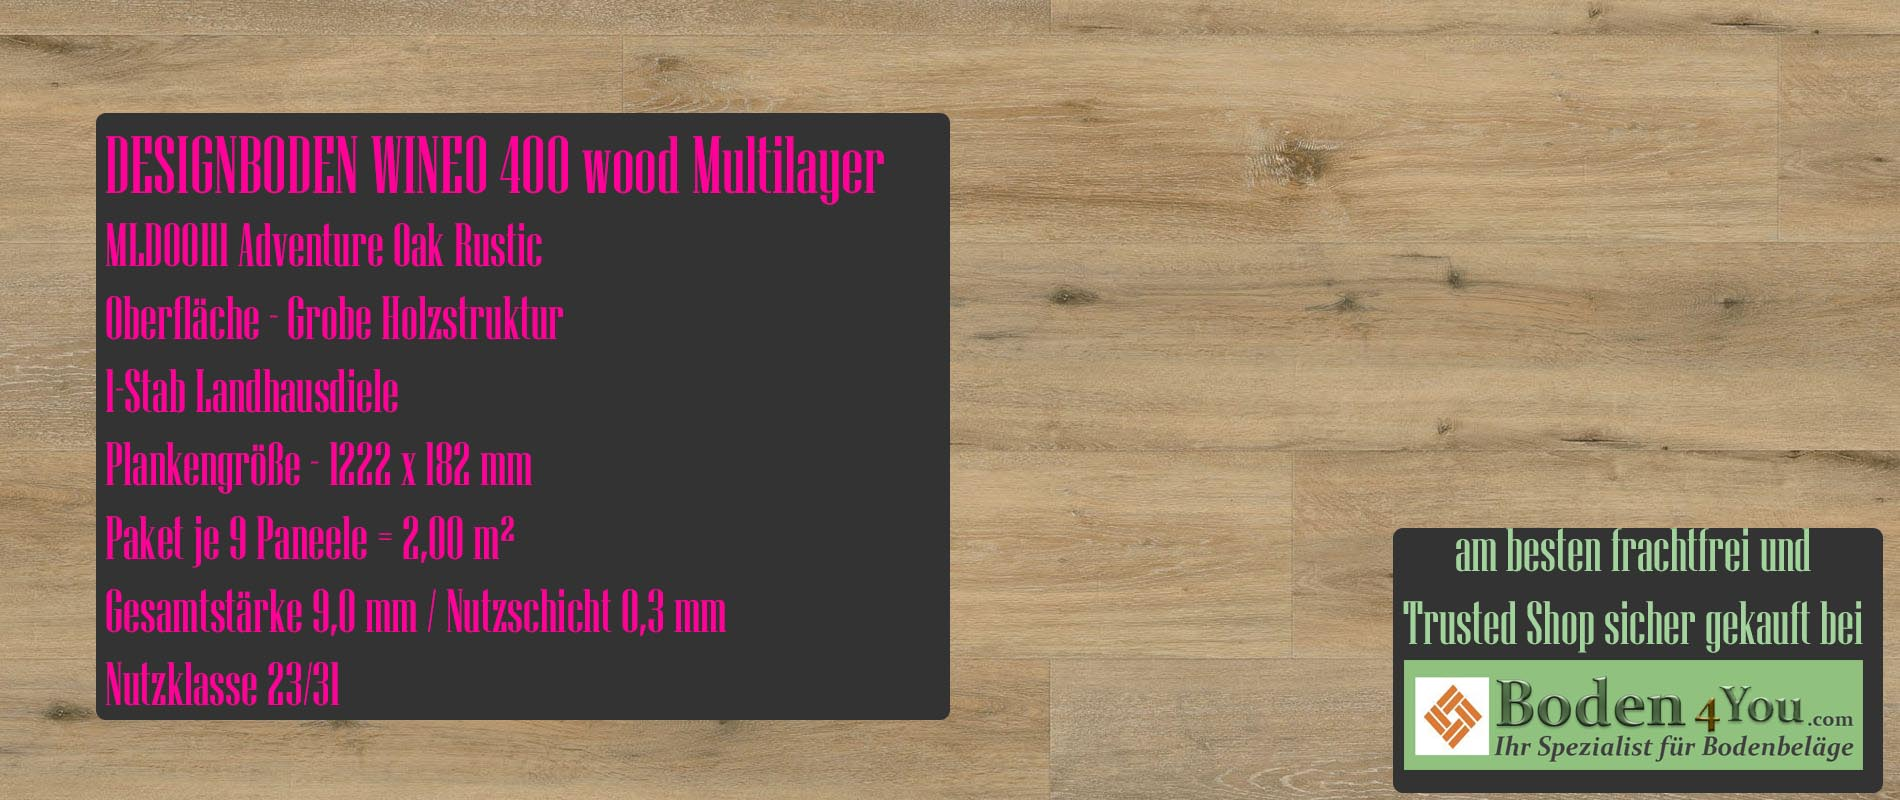 Wineo 400 Multilayer Adventure Oak Rustic @ Boden4You.com Design Bodenbelag günstig und Trsuted Shop sicher kaufen